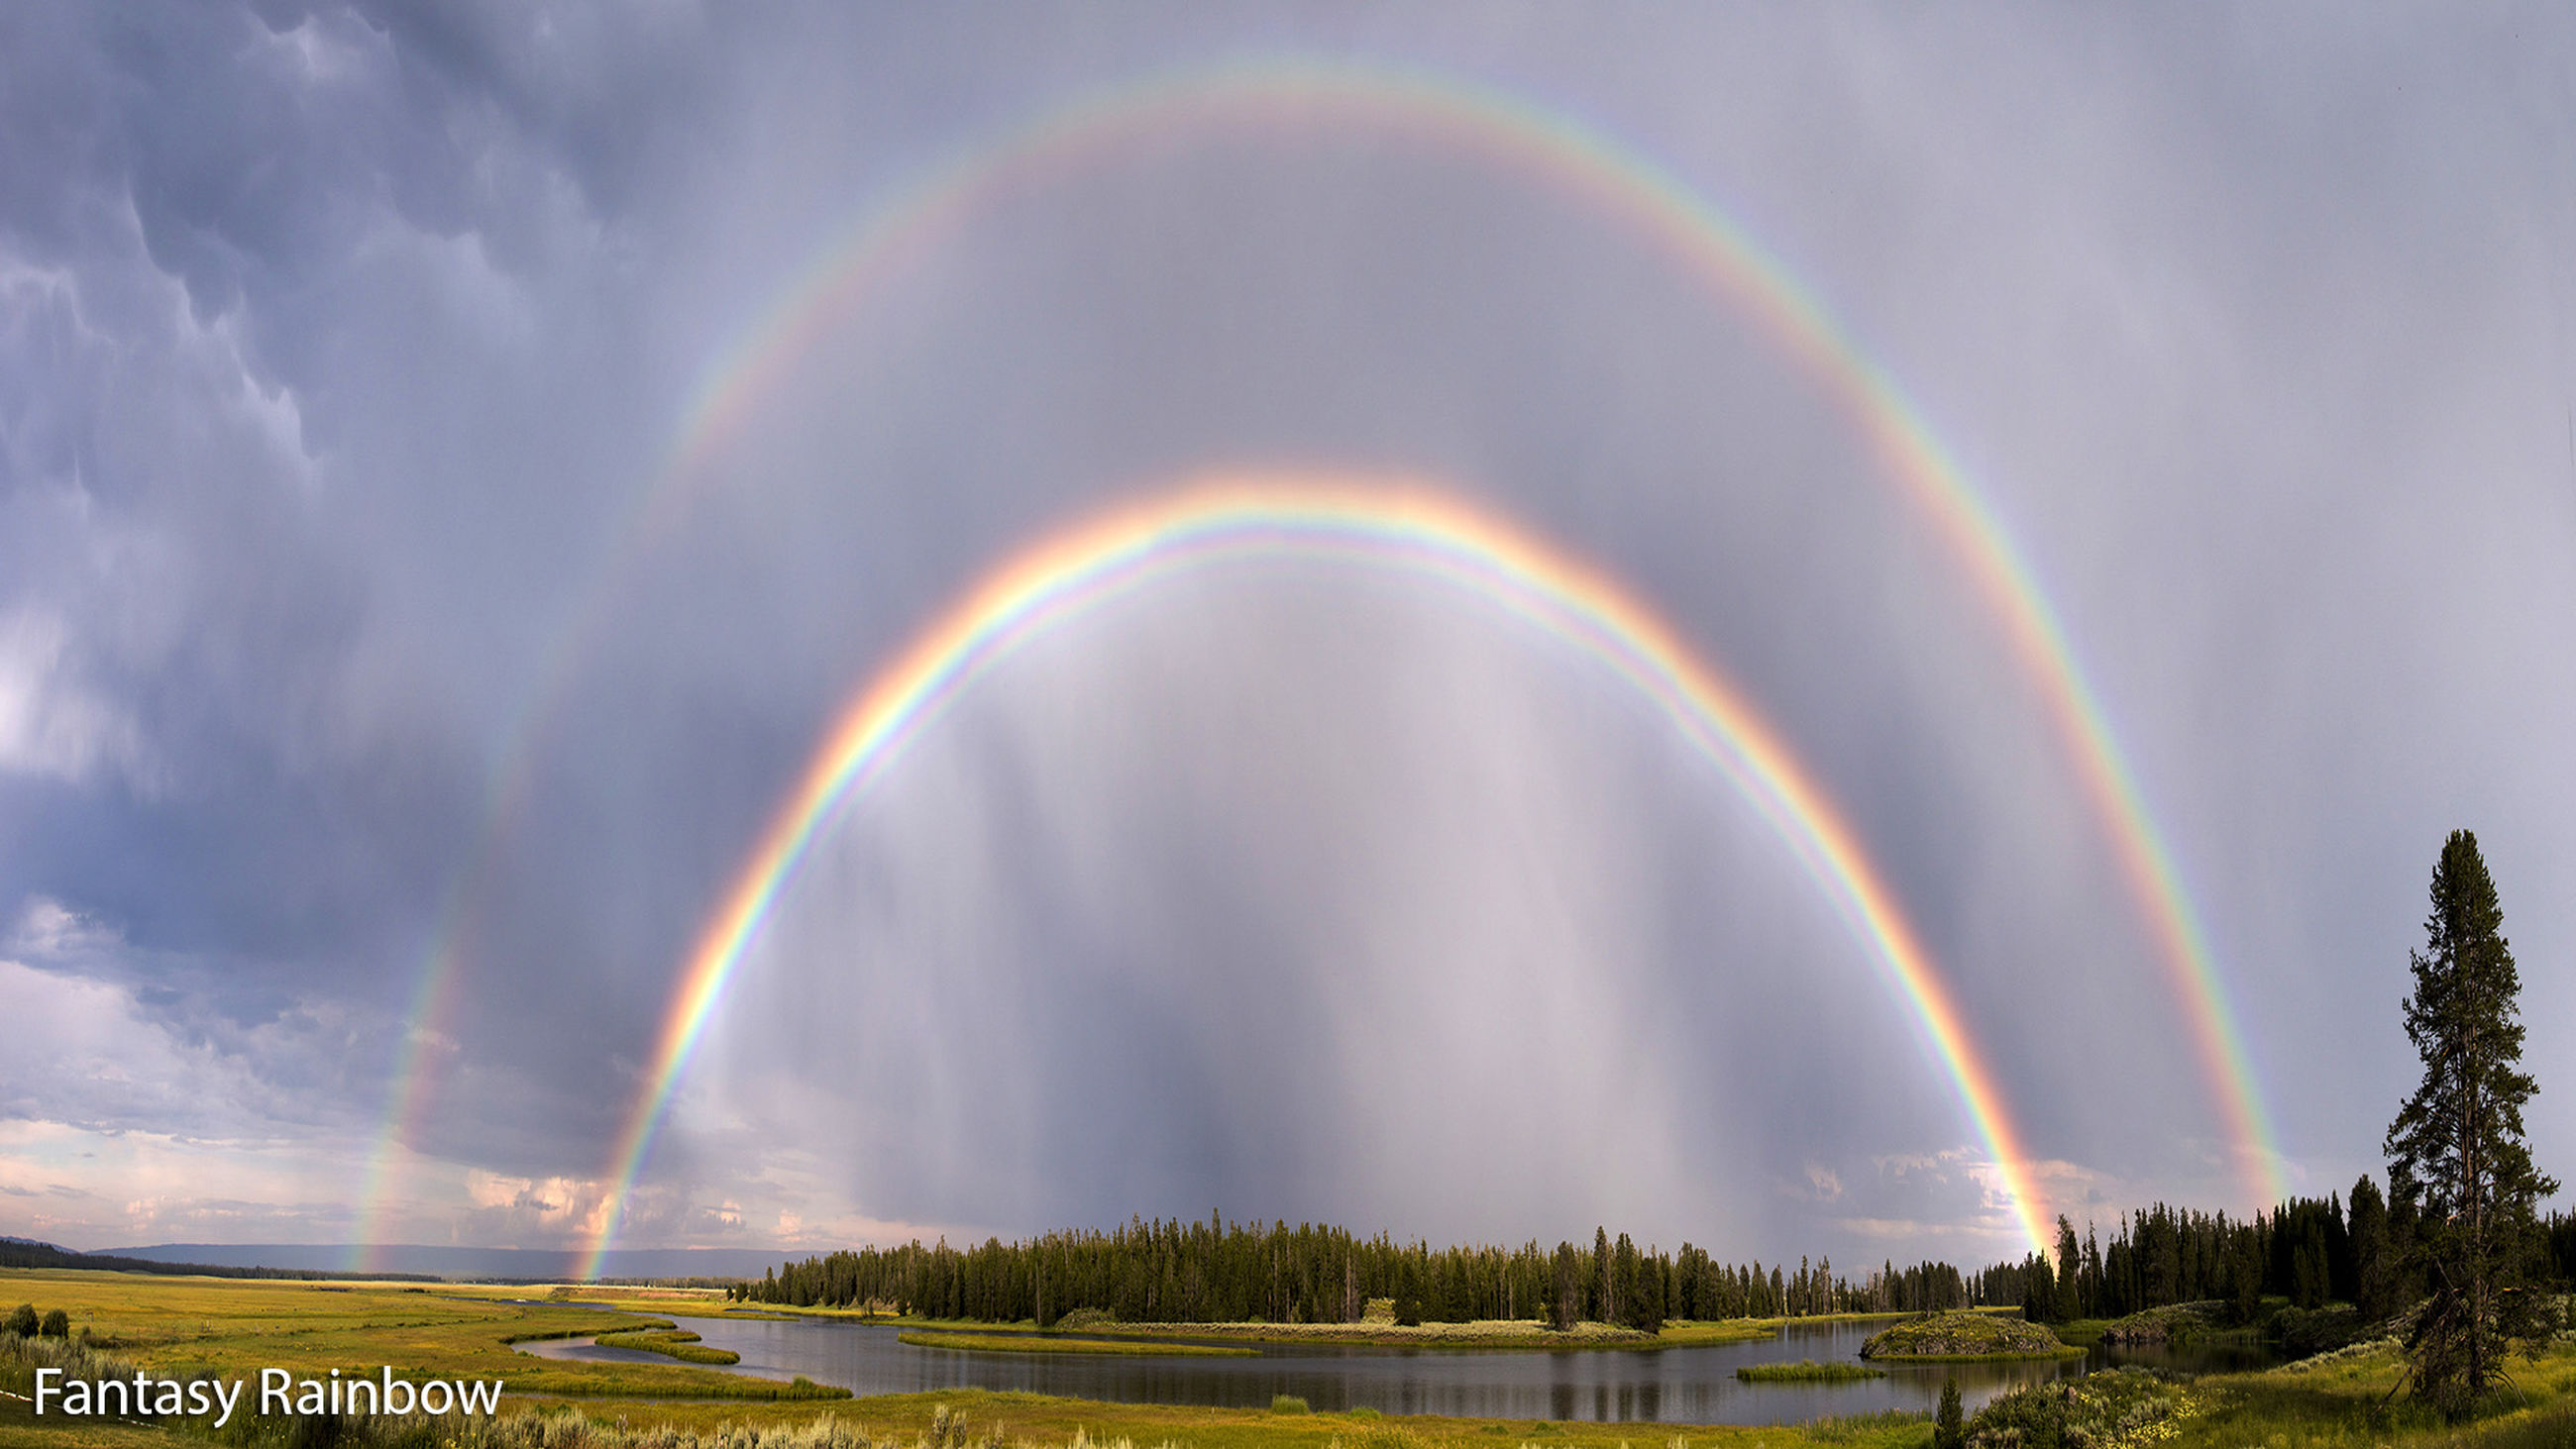 rainbow, multi colored, sky, scenics, beauty in nature, cloud - sky, tranquil scene, tranquility, nature, tree, landscape, idyllic, cloudy, grass, weather, field, outdoors, cloud, colorful, panoramic